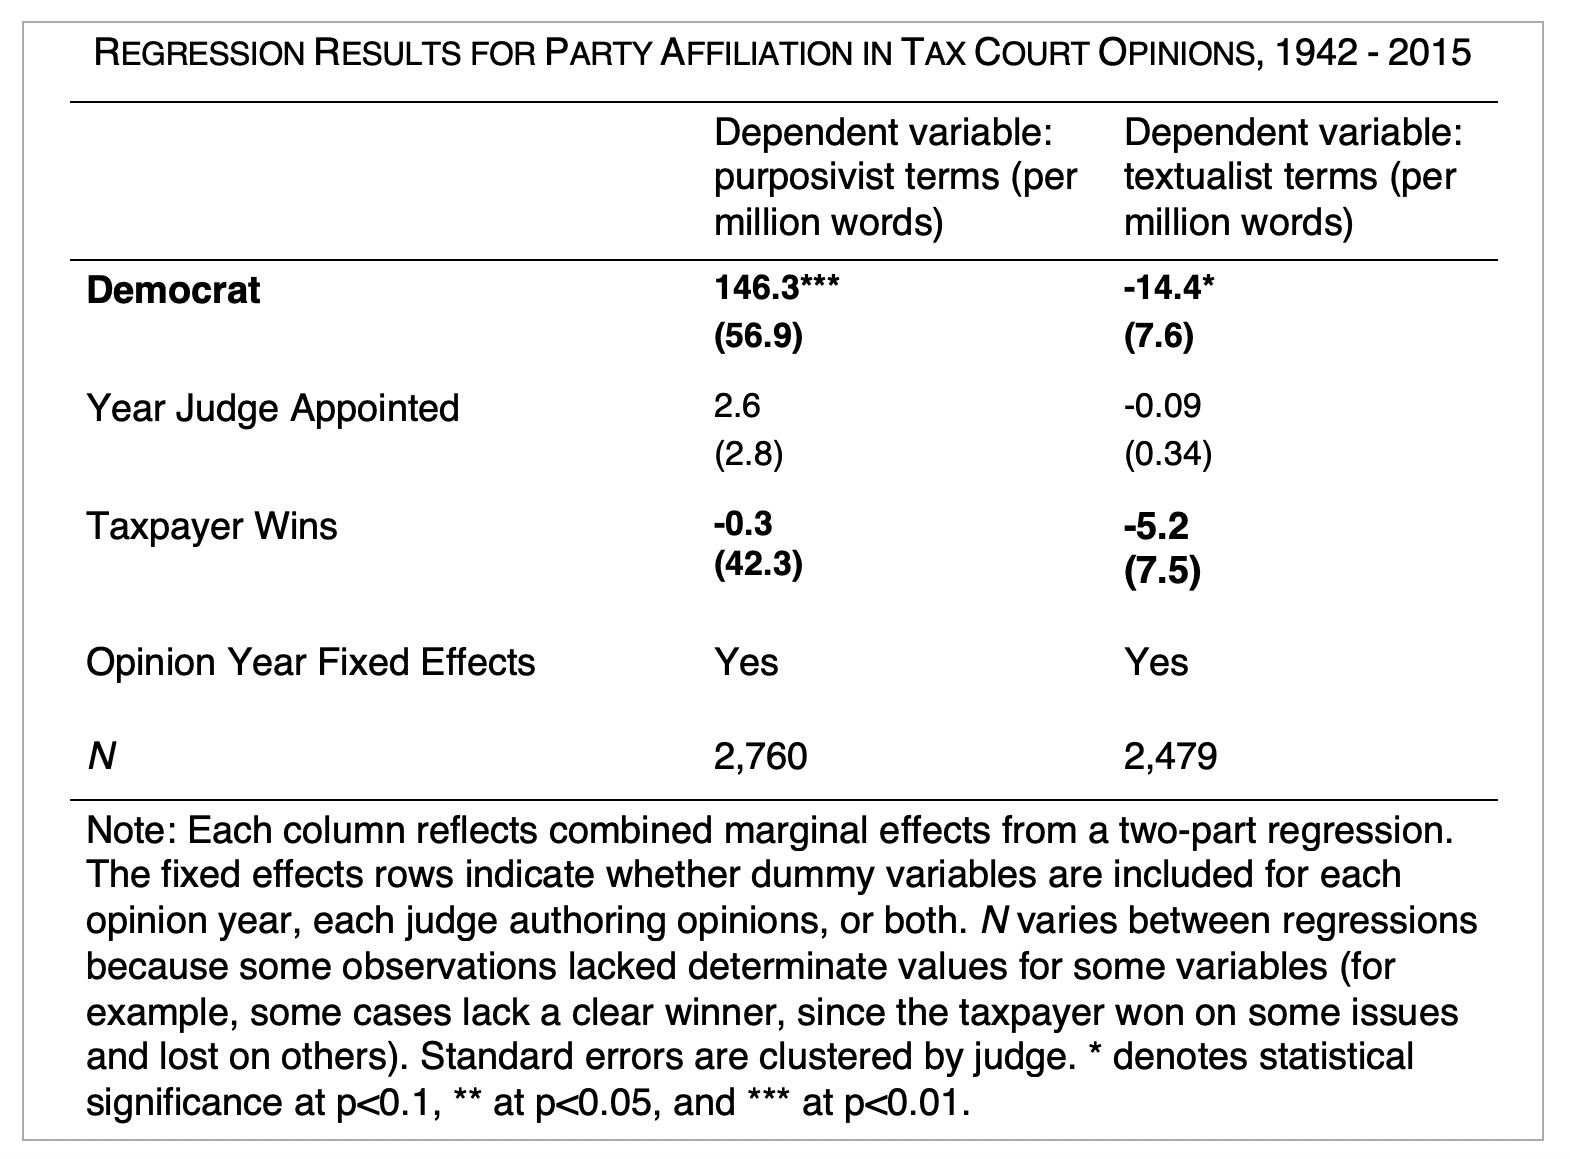 "Table showing ""Regression Results for Party Affiliation in Tax Court Opinions, 1942 - 2015"" including dependent variables for purposivist and textualist terms per million words, for ""Democrat"", ""Year Judge Appointed"", ""Taxpayer Wins"", ""Opinion Year Fixed Effects"", and ""N""."